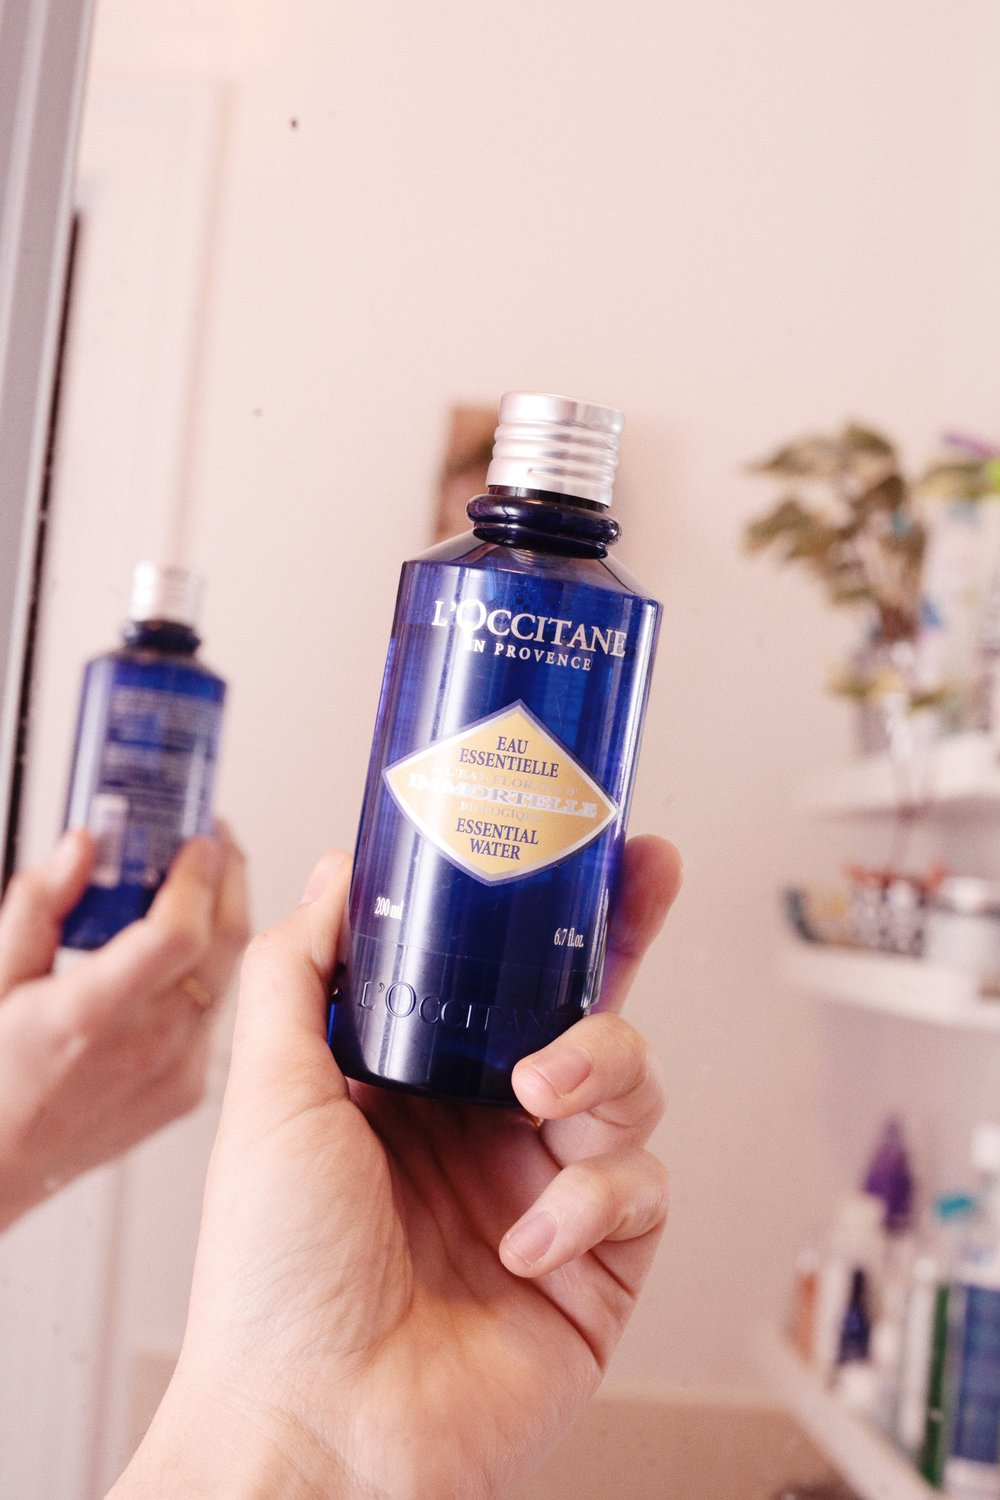 L'Occitane Essential Water